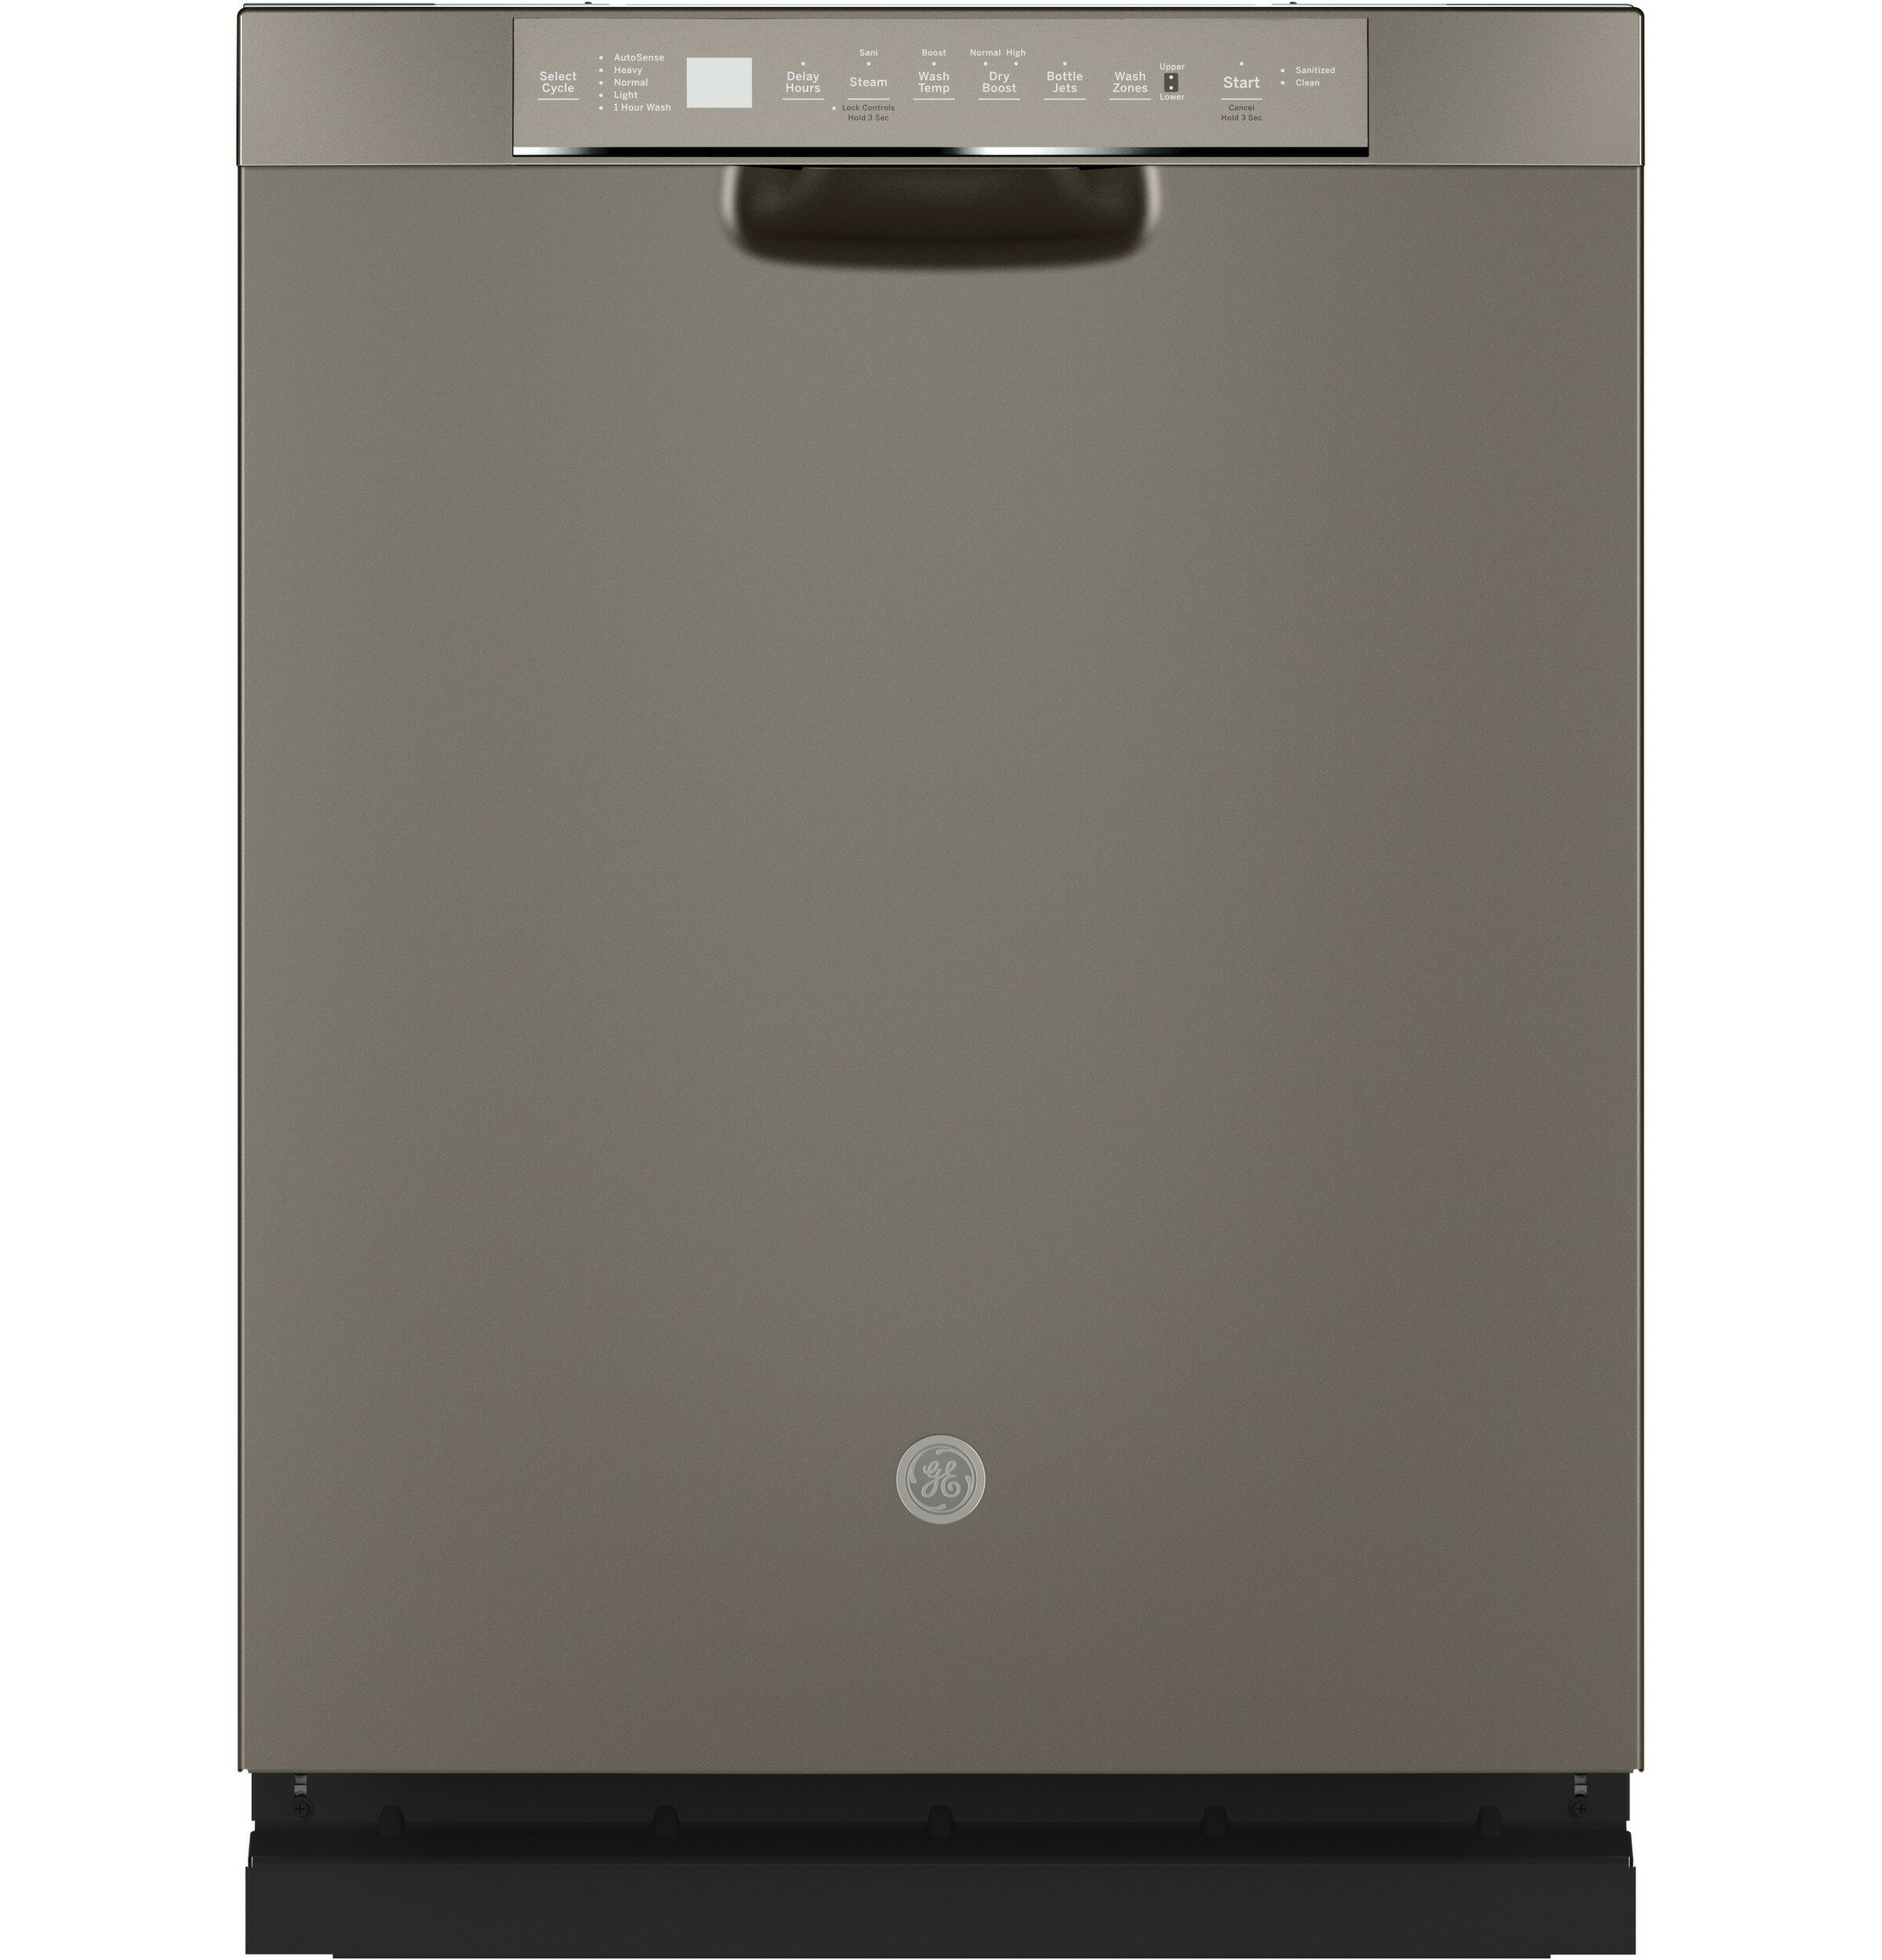 Ge Appliances Stainless Steel Interior 24 48 Dba Built In Full Console Dishwasher With Front Controls Reviews Wayfair